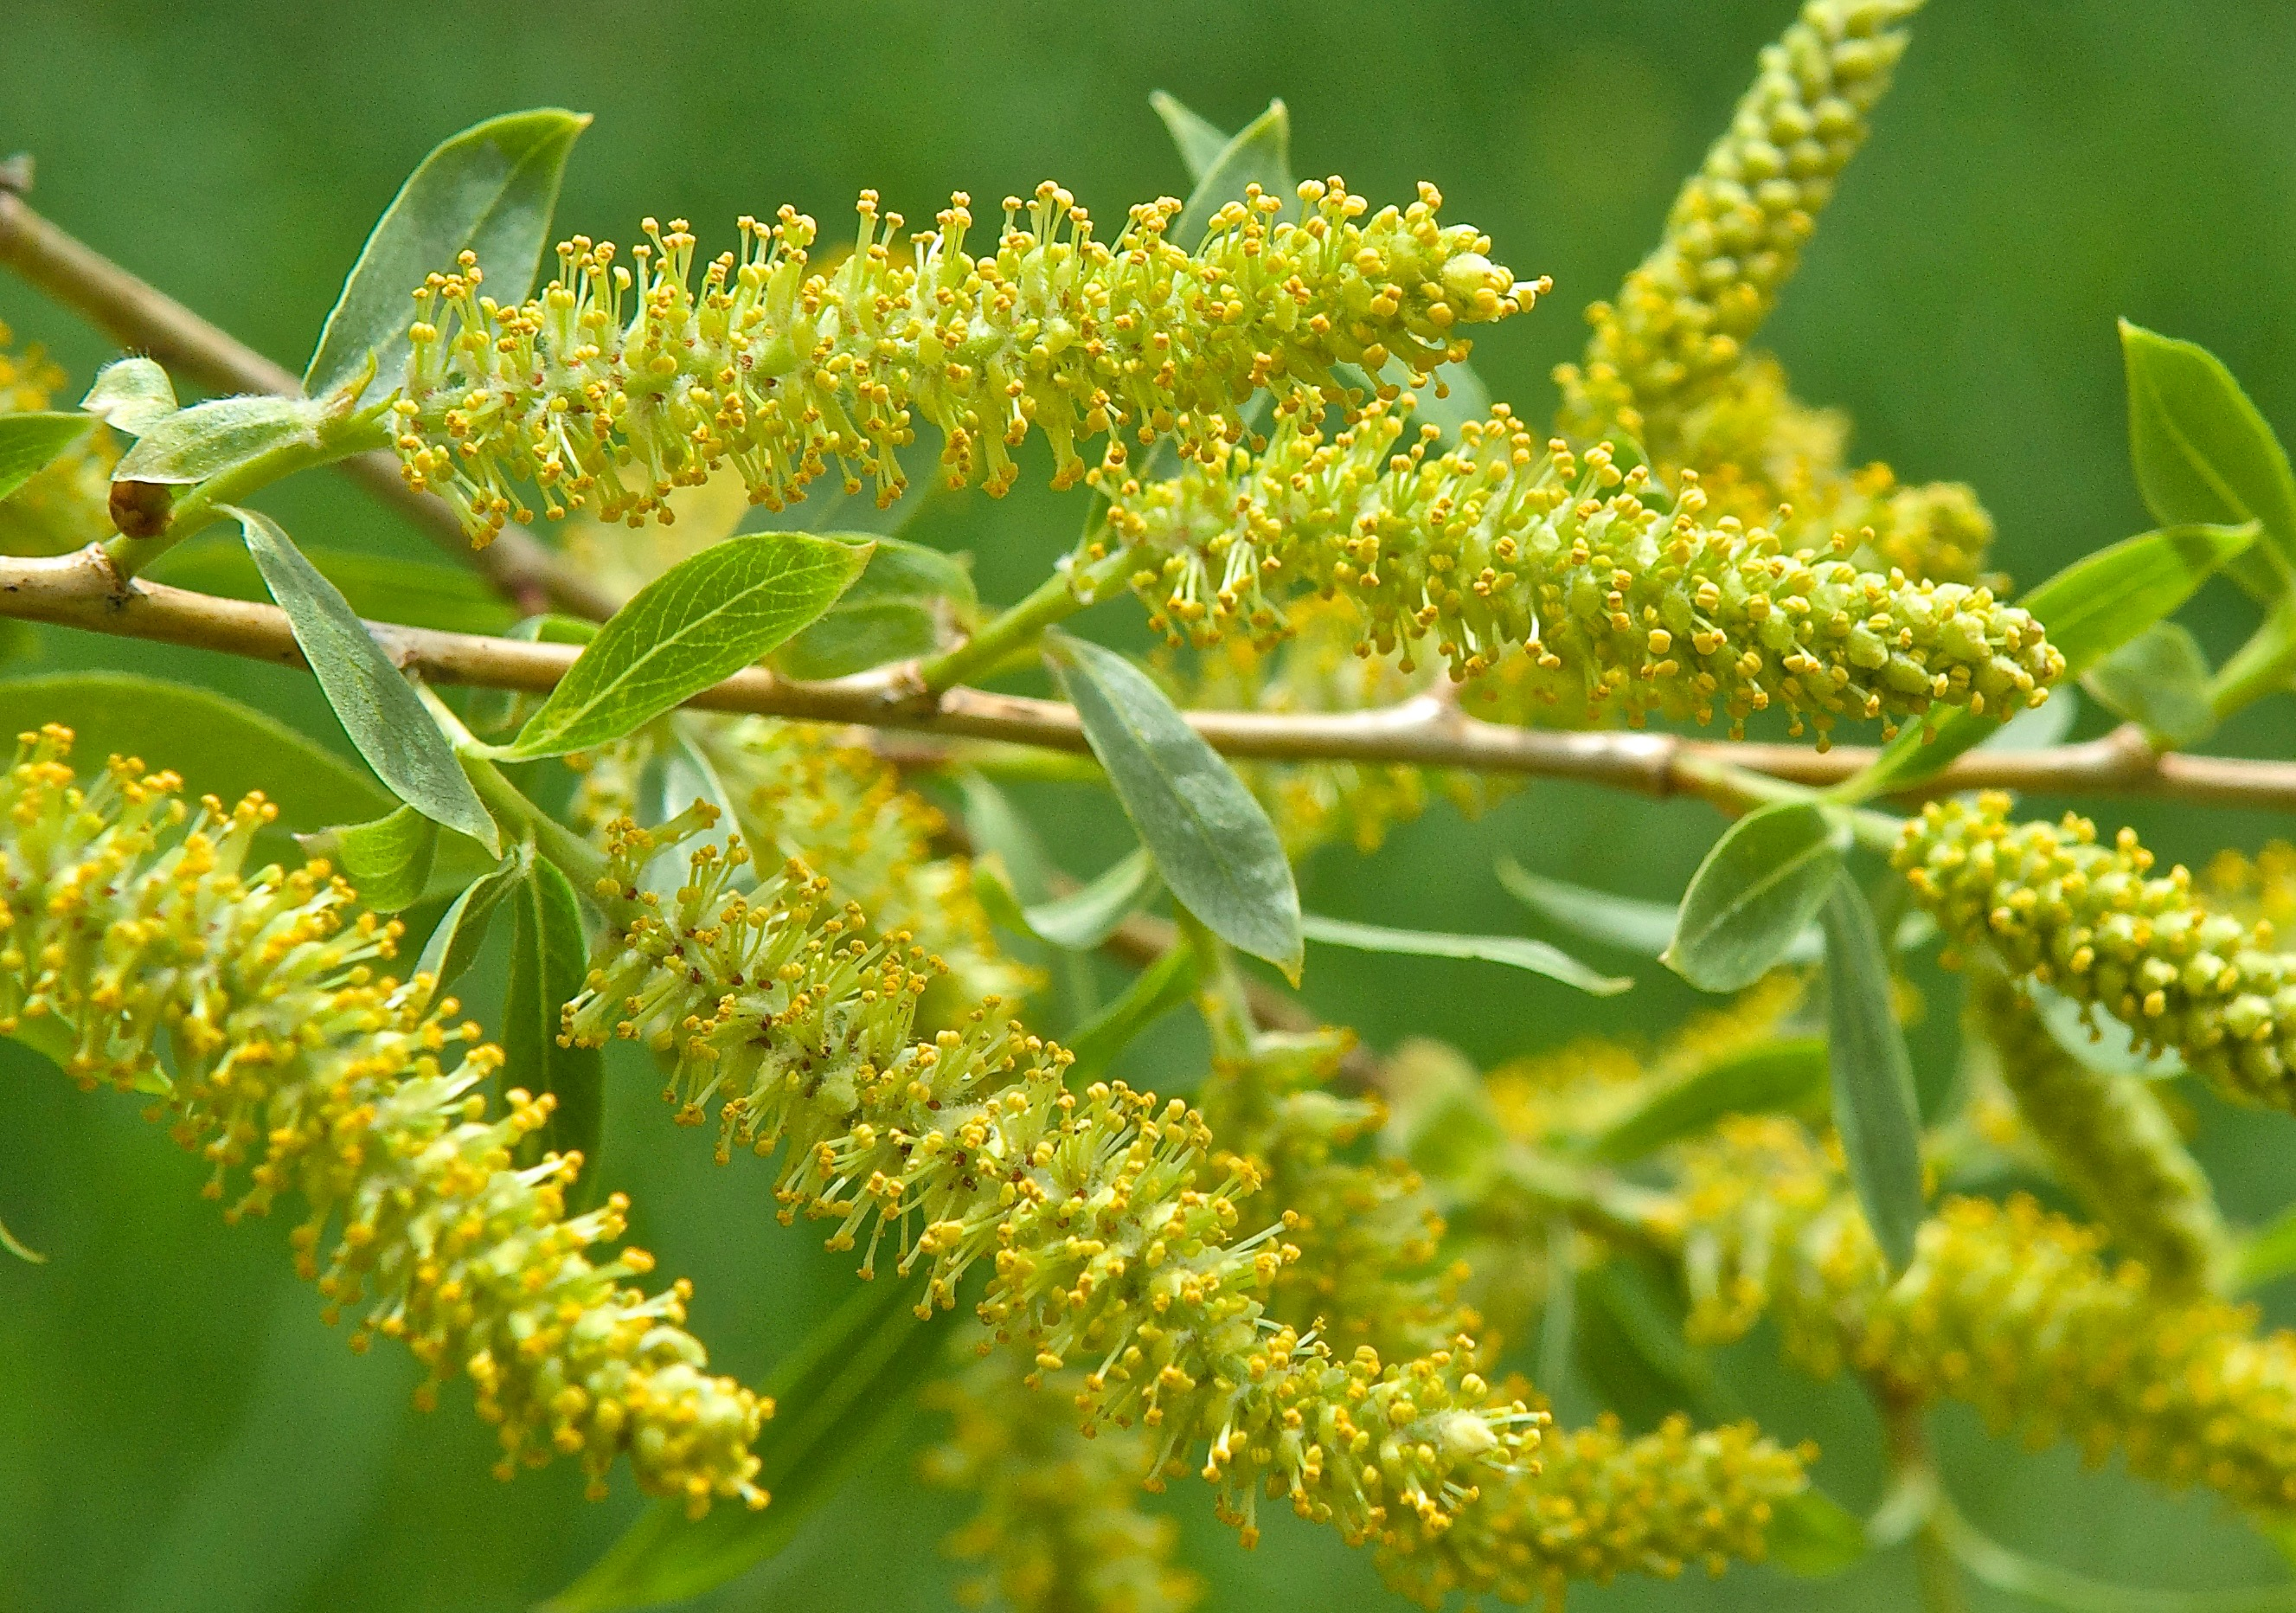 Peachleaf Willow Catkins